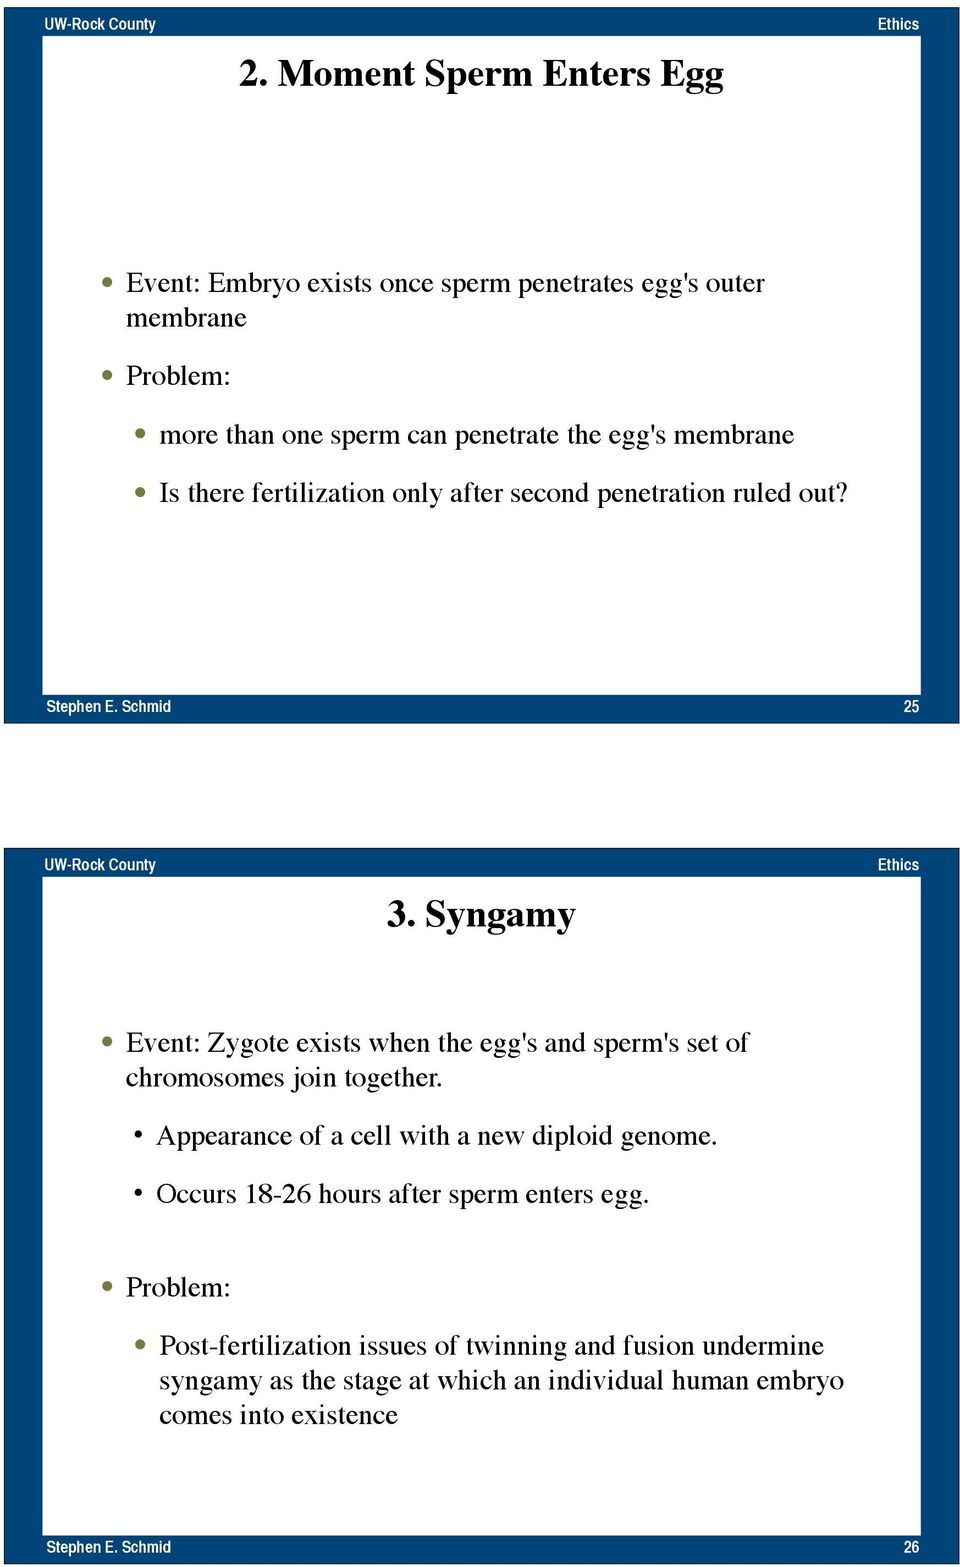 Syngamy Event: Zygote exists when the egg's and sperm's set of chromosomes join together. Appearance of a cell with a new diploid genome.